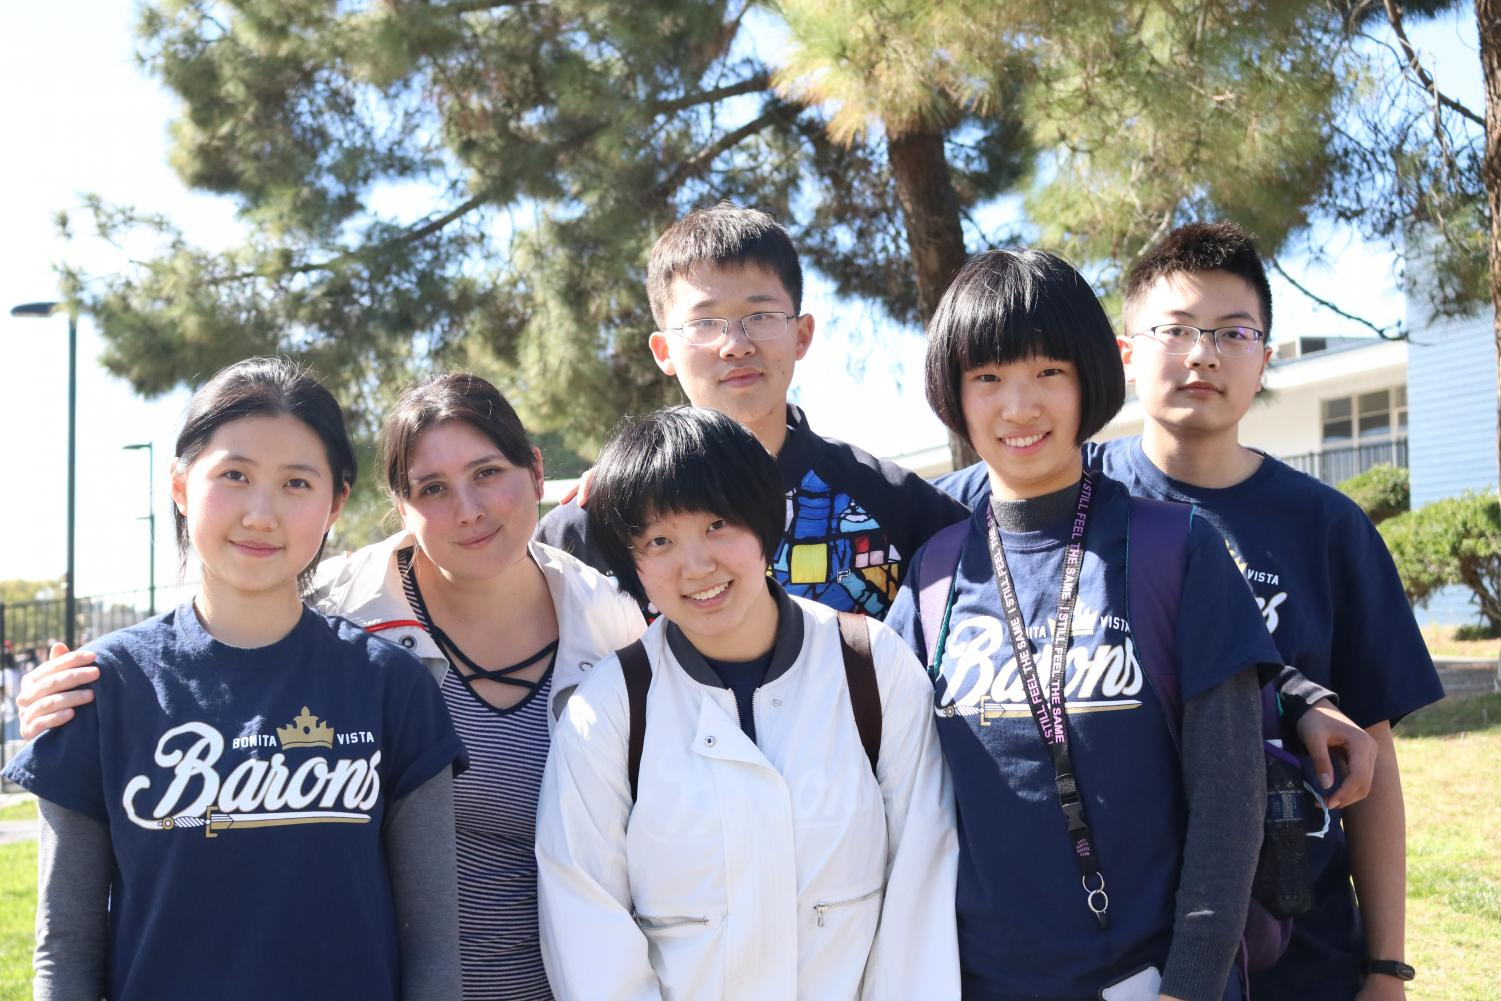 Five of the chinese exchange students pose alongside Program Coordinator Carla Ruiz-Velasco. This was one of the last things they did before driving away on one of the Sweetwater Union High School District school buses from their final day on the Bonita Vista High campus.